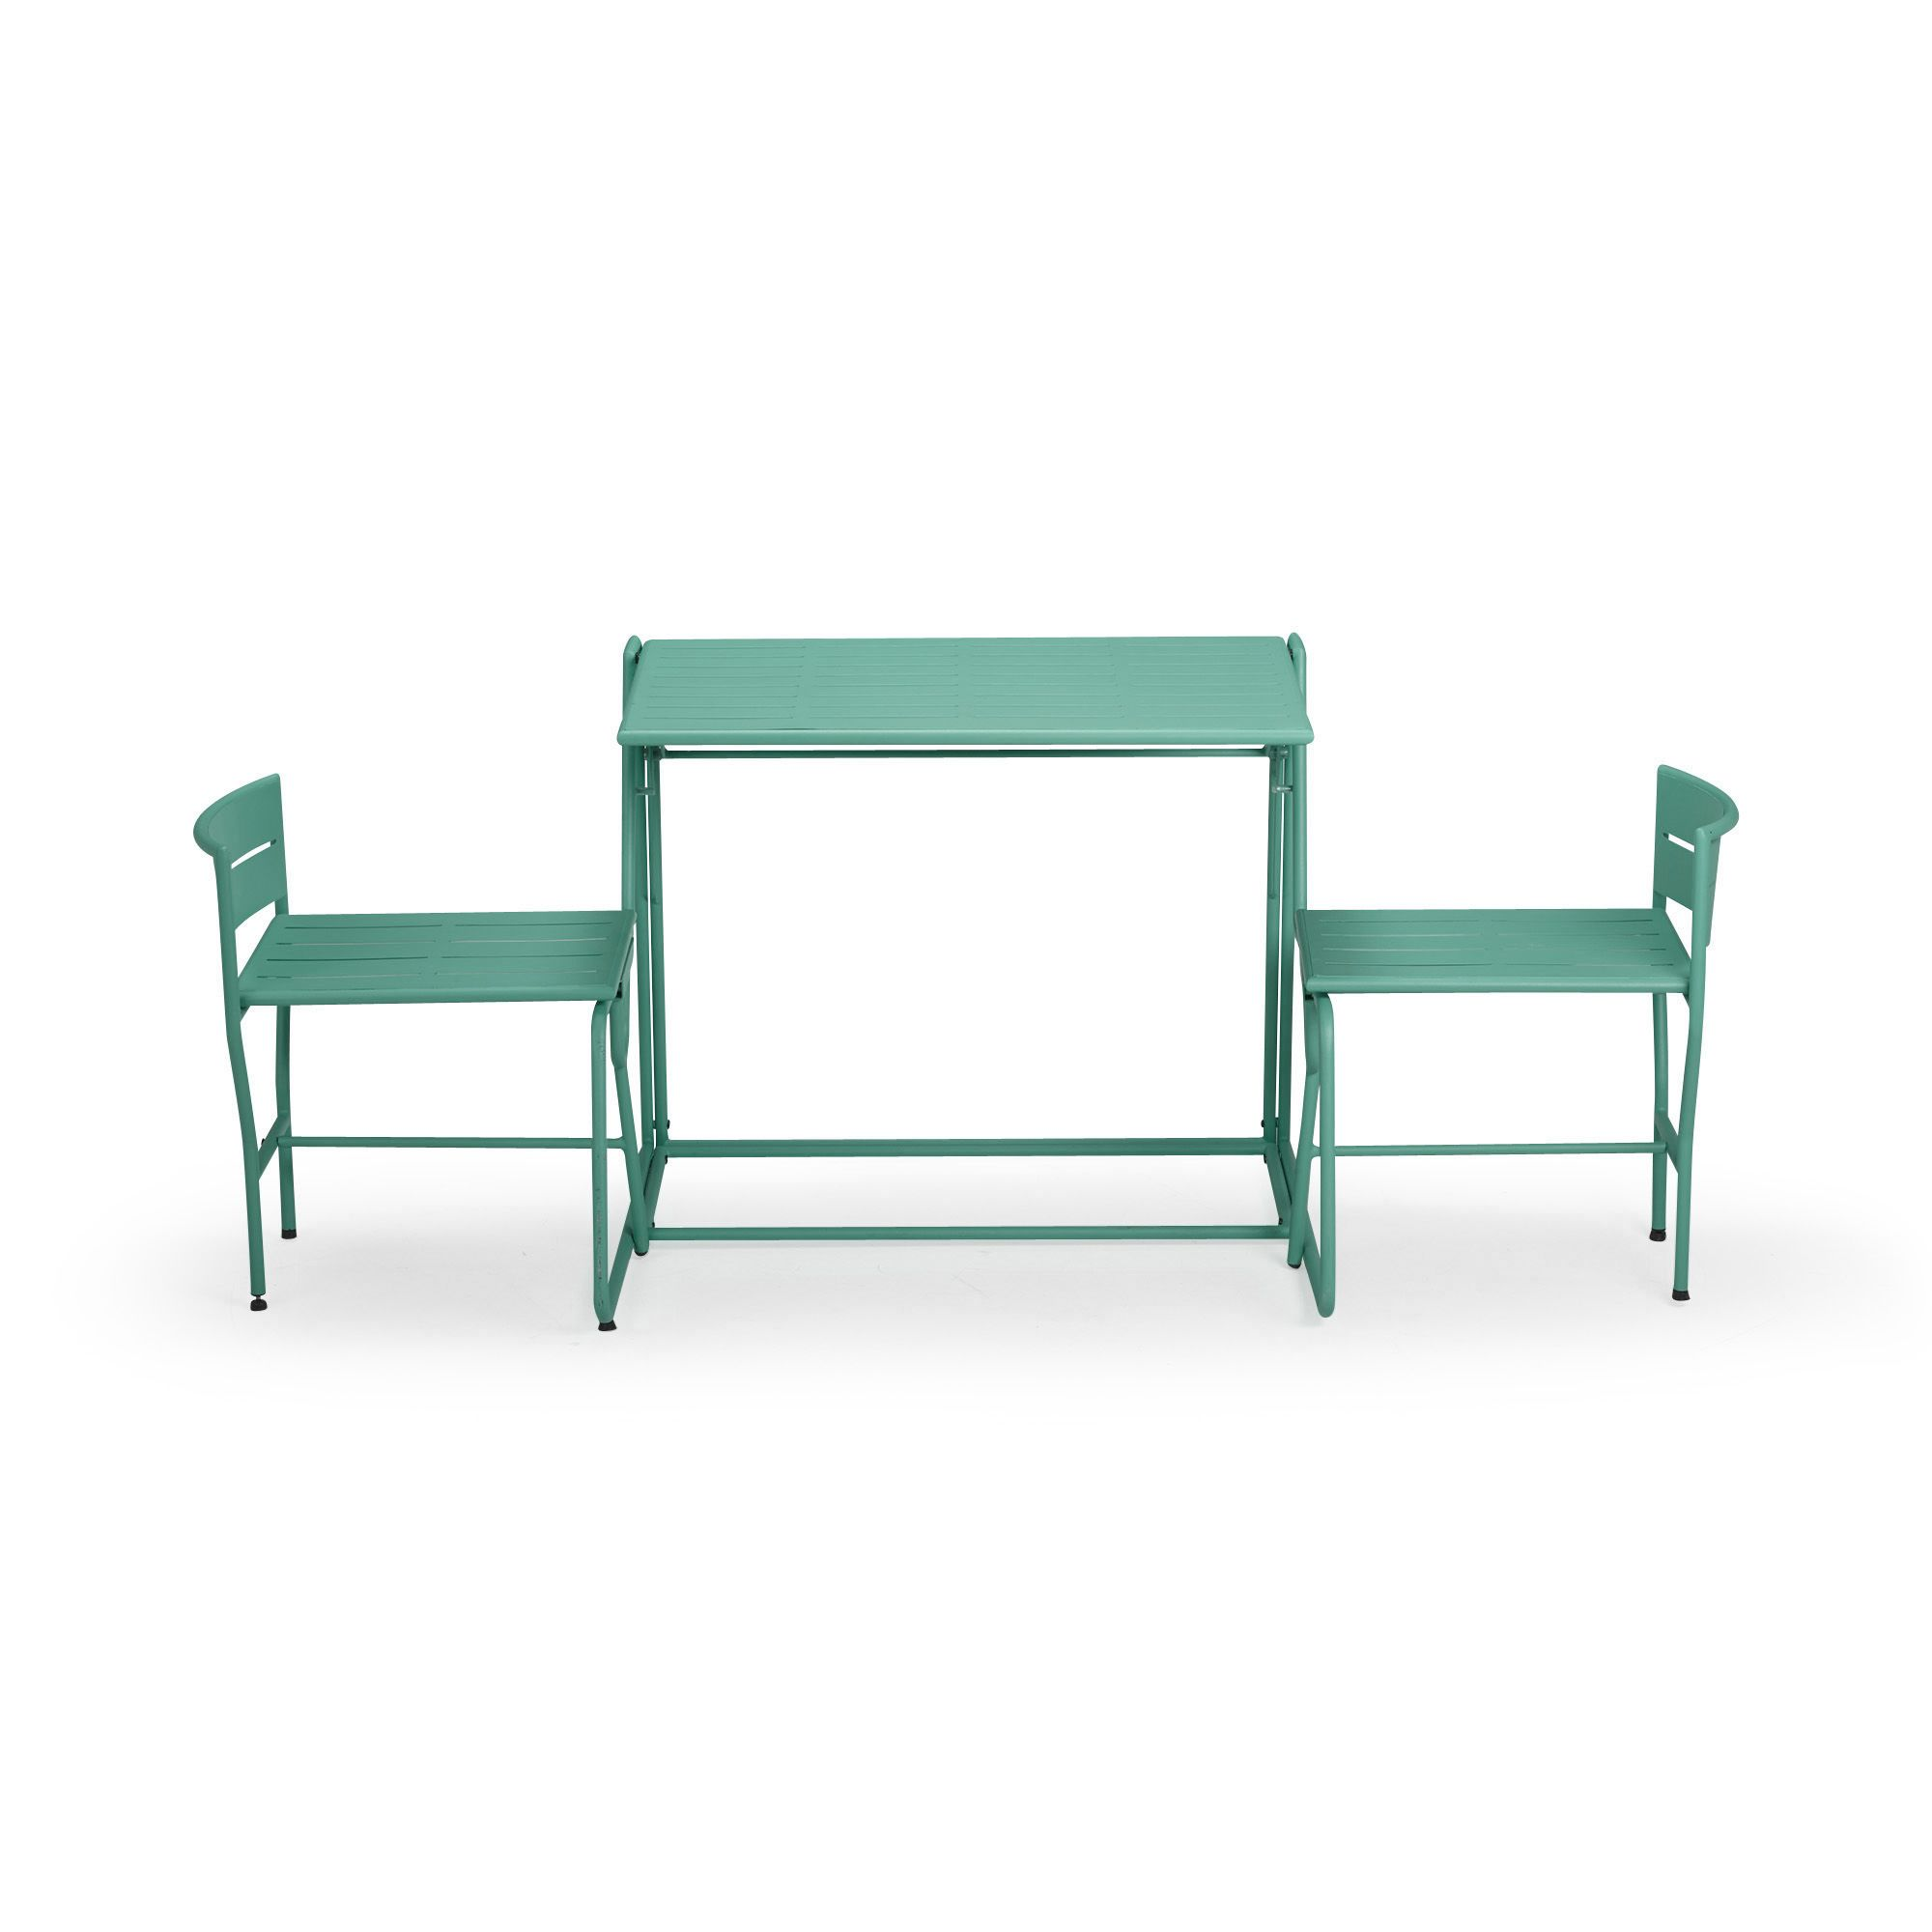 Salon-de-balcon-jardin-design-transformable-2-en-1-picnic-alinea-04